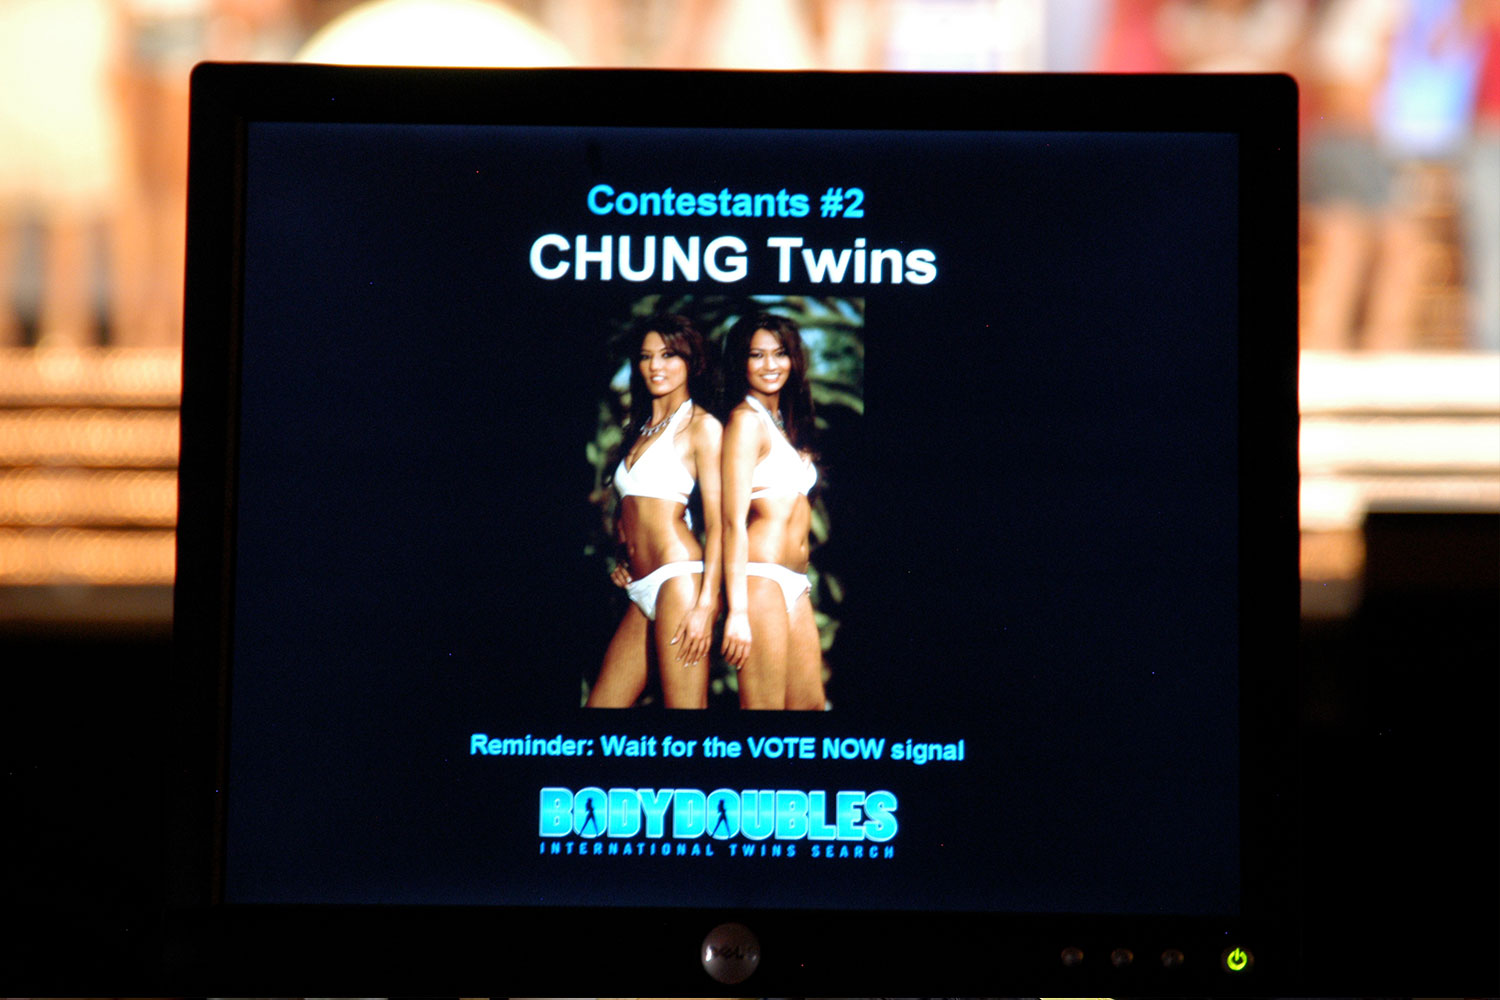 toast-model-event-planning-body-doubles-twins-party-plan-10twelve.jpg